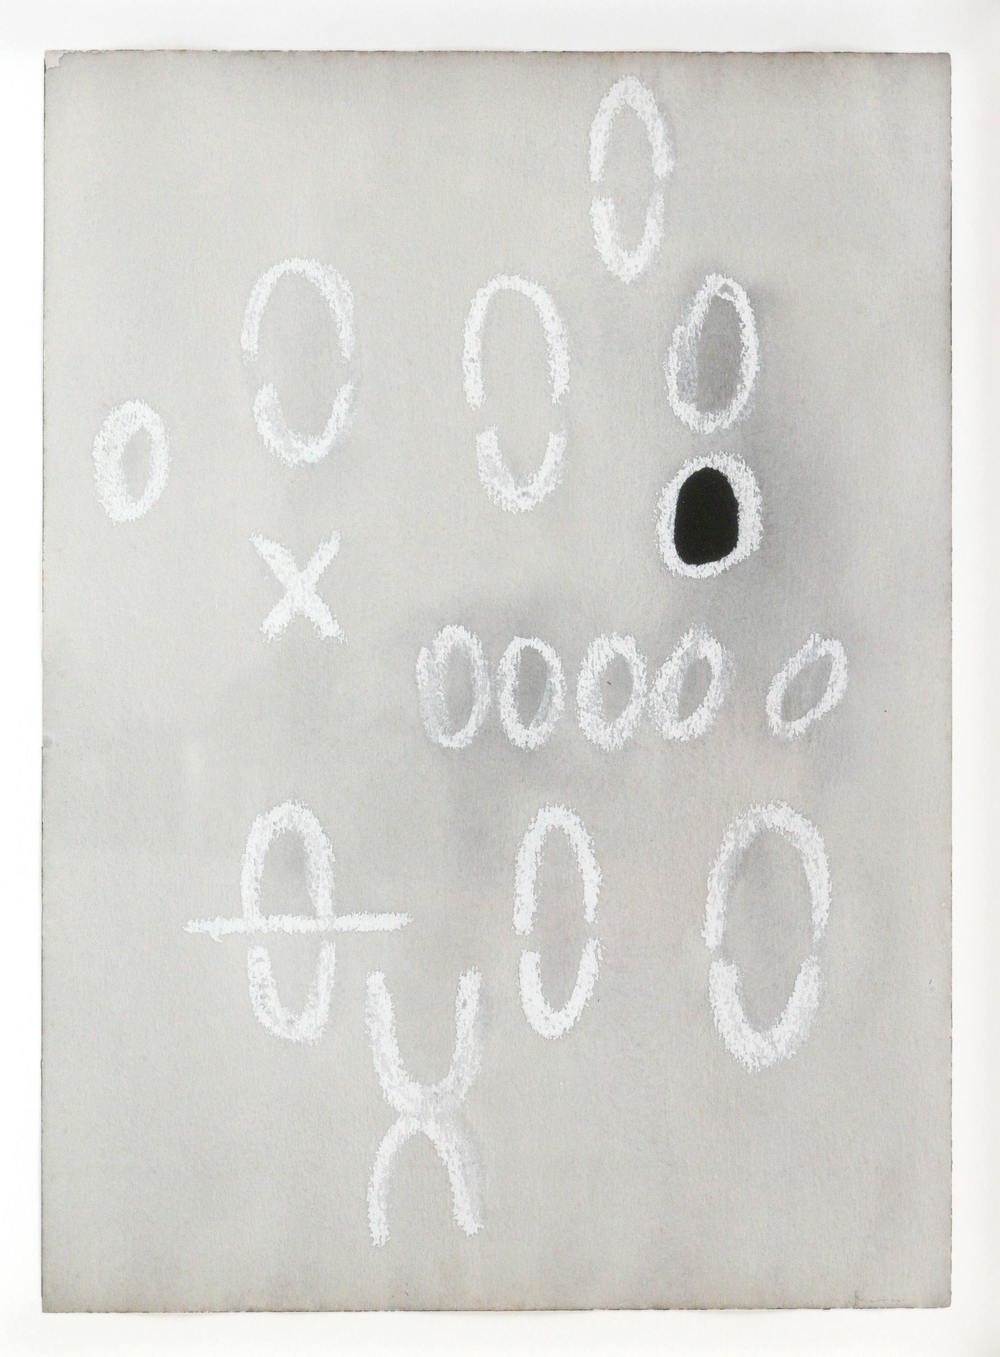 Mira Schendel Untitled 1970 mixed media on paper 14 1/8 x 10 1/4 inches